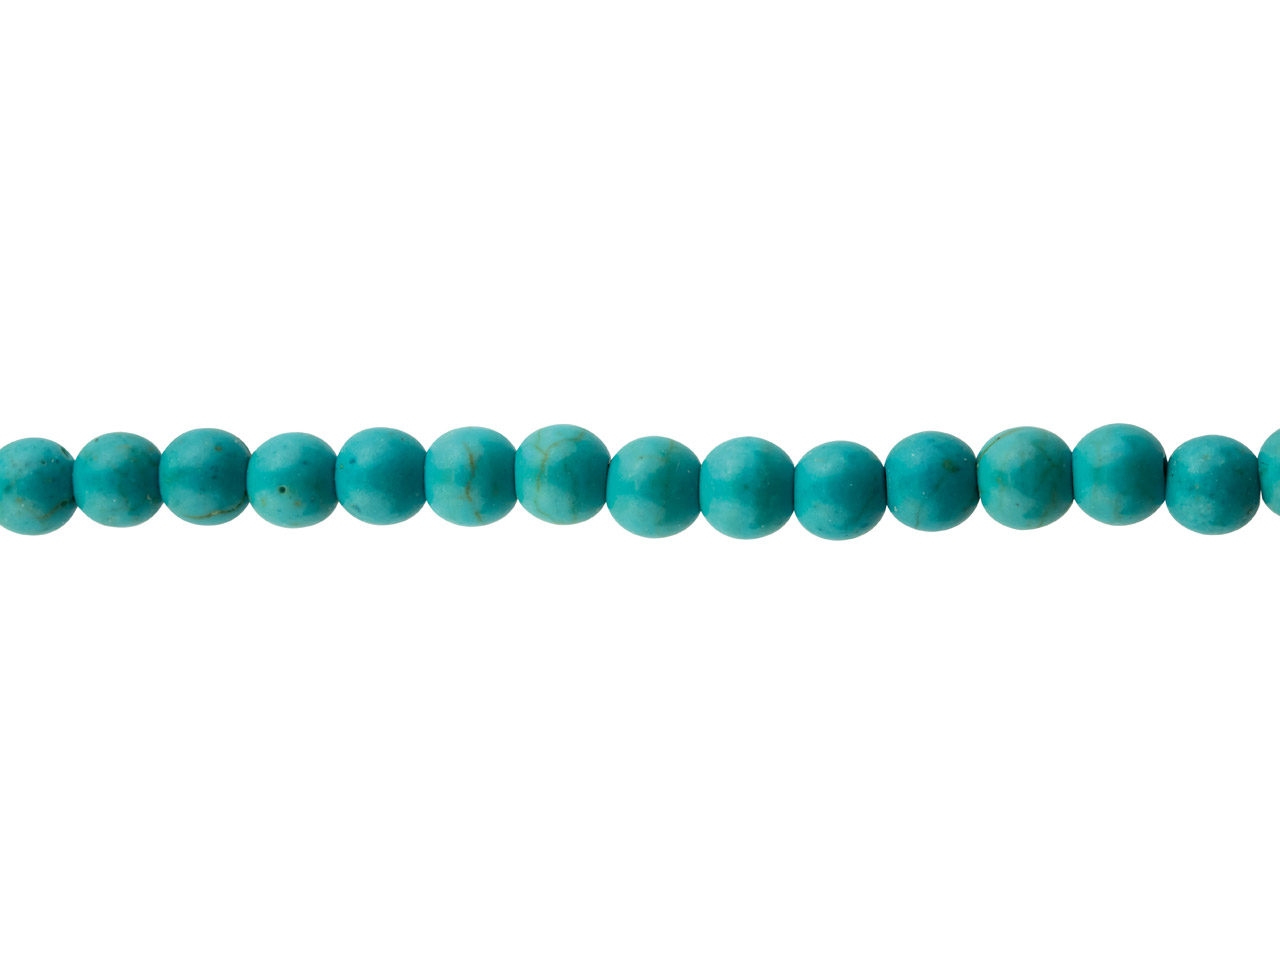 Synthetic Turquoise Semi Precious   Round Beads, 6mm, 15.5